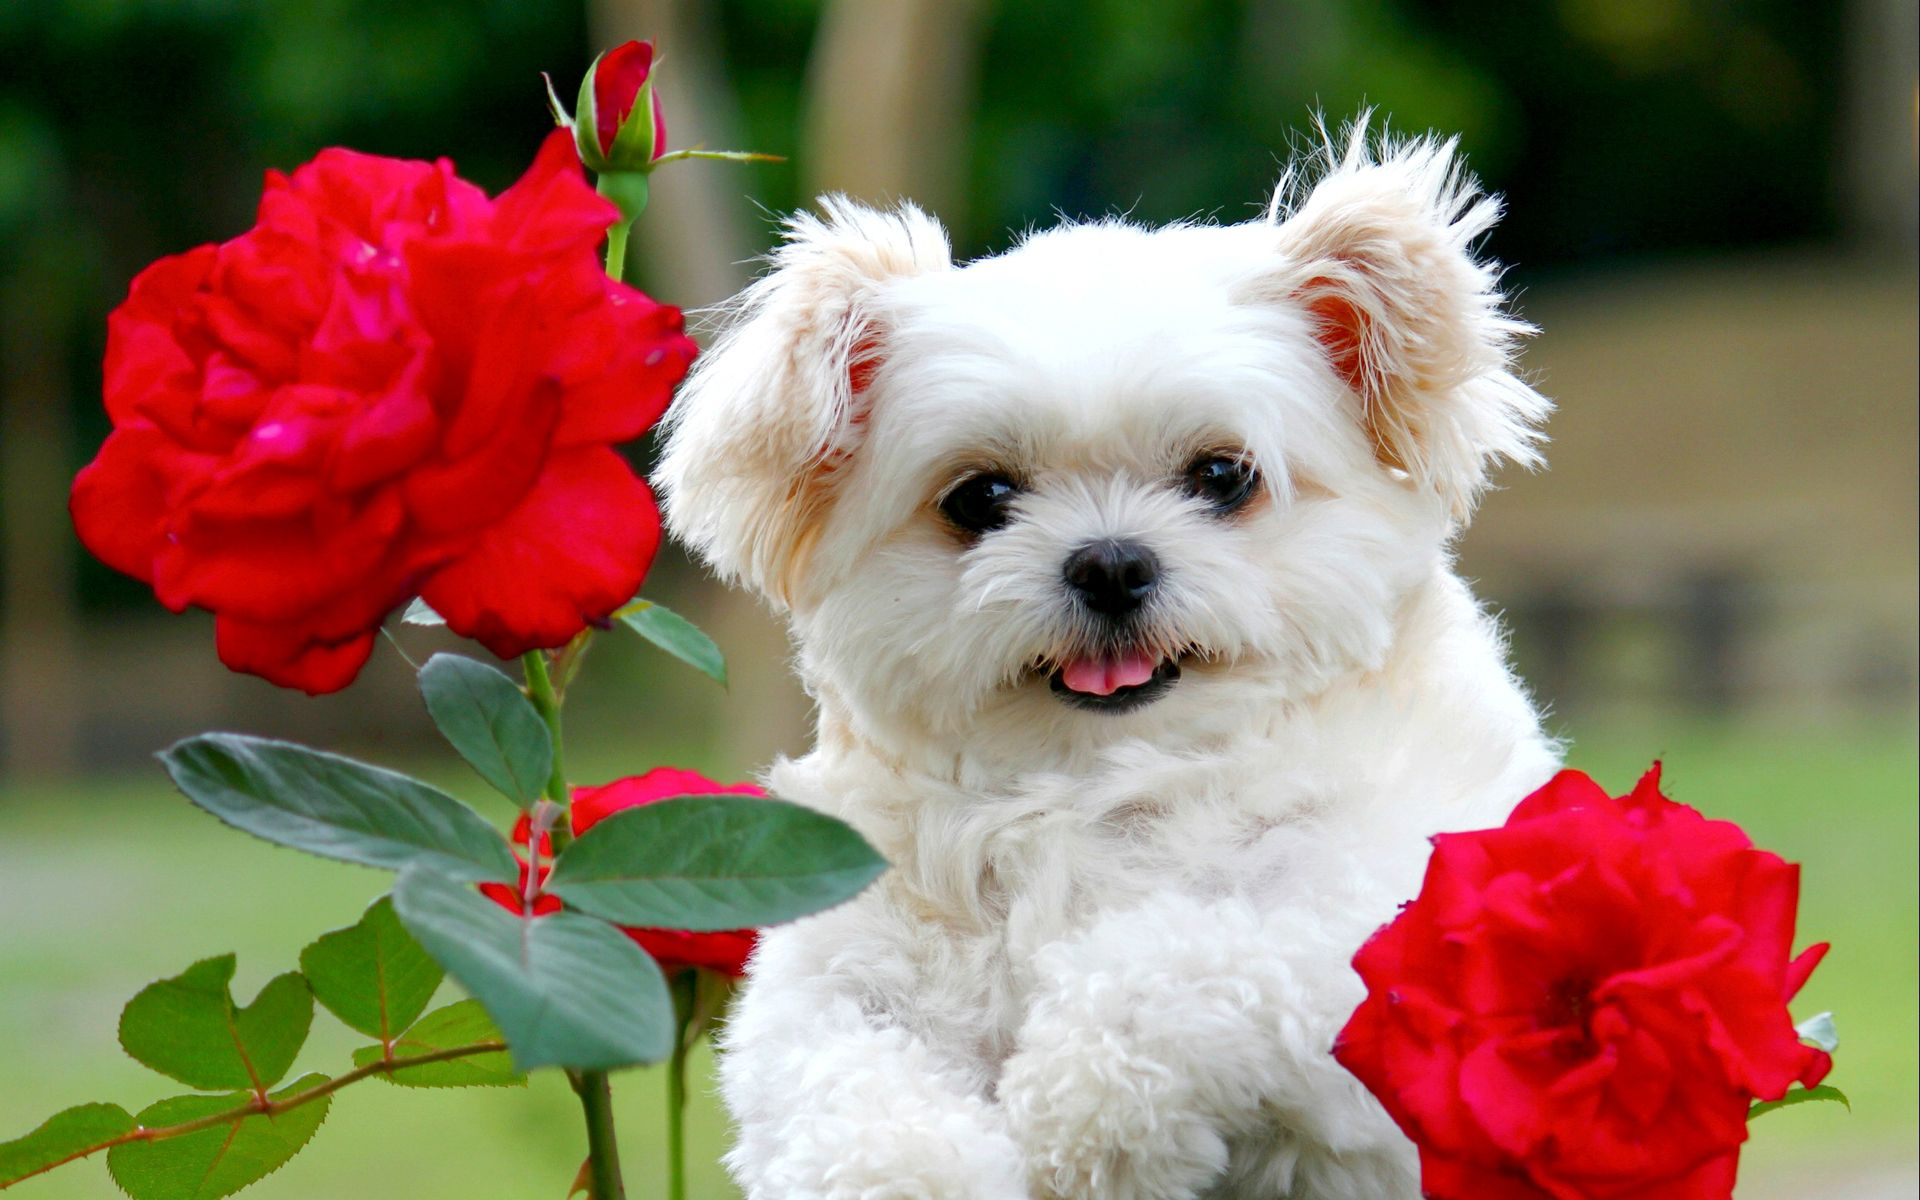 coffie | Cute Puppy Wallpaper . Download free 'Cute Puppy Wallpaper and